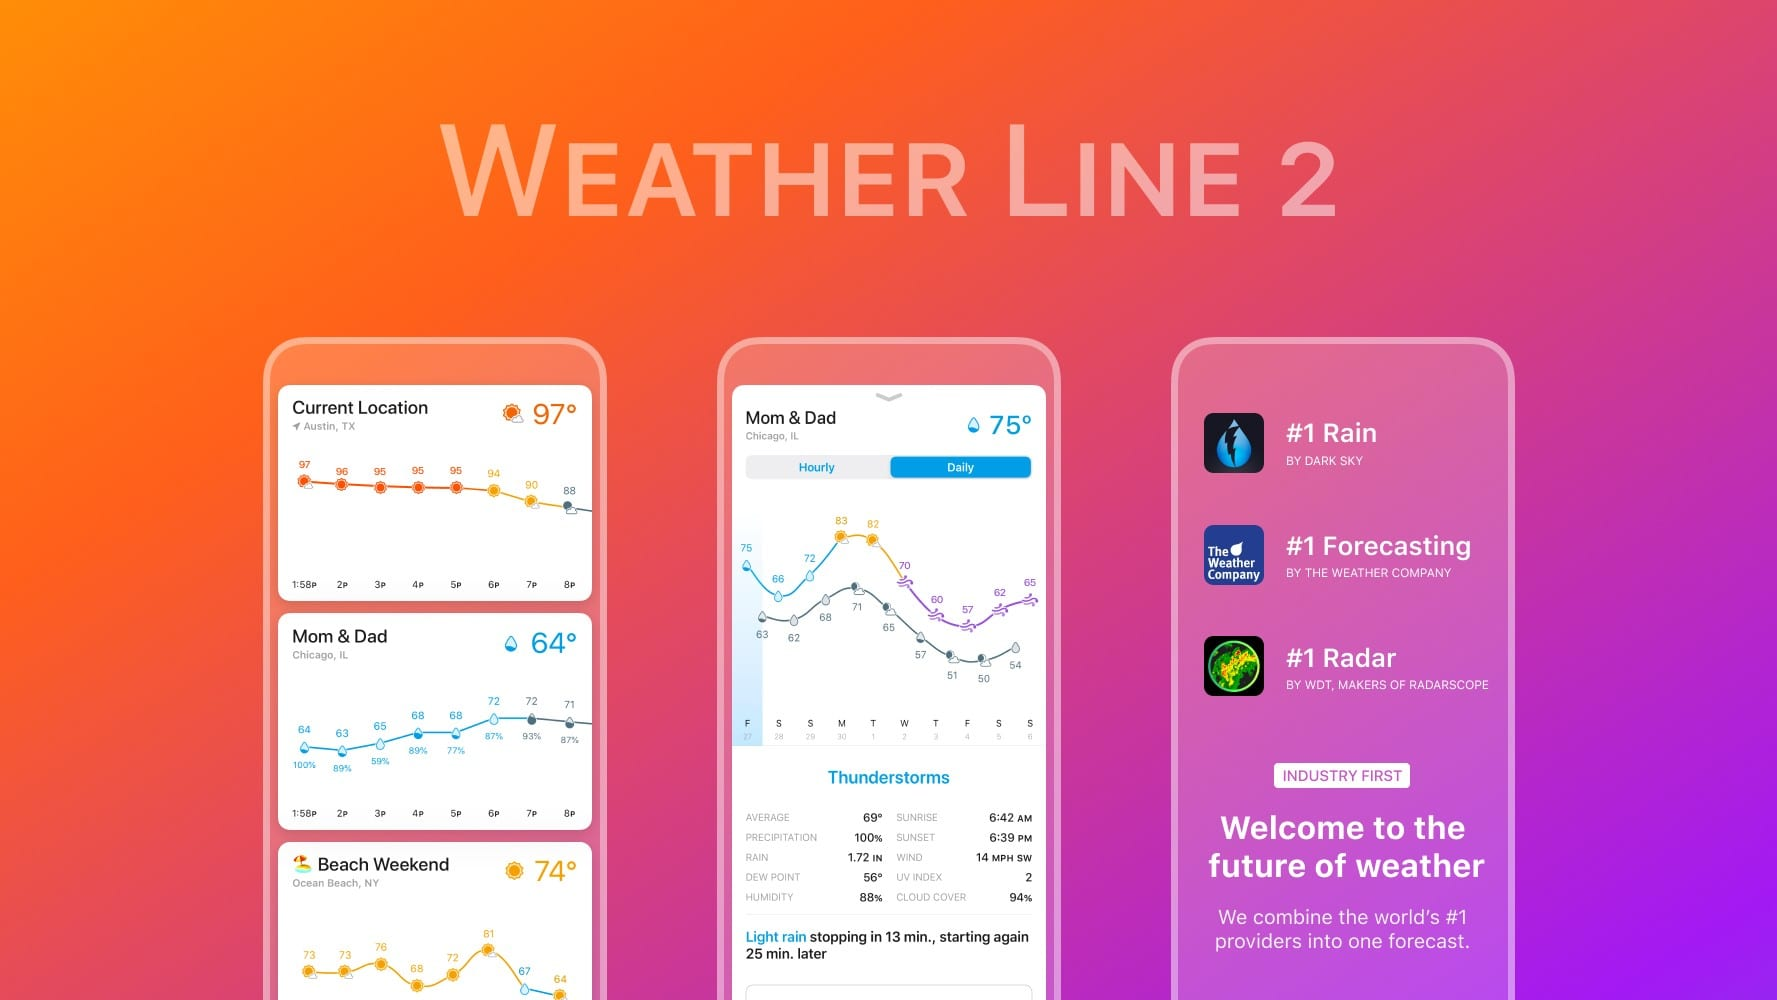 Weather Line Overview